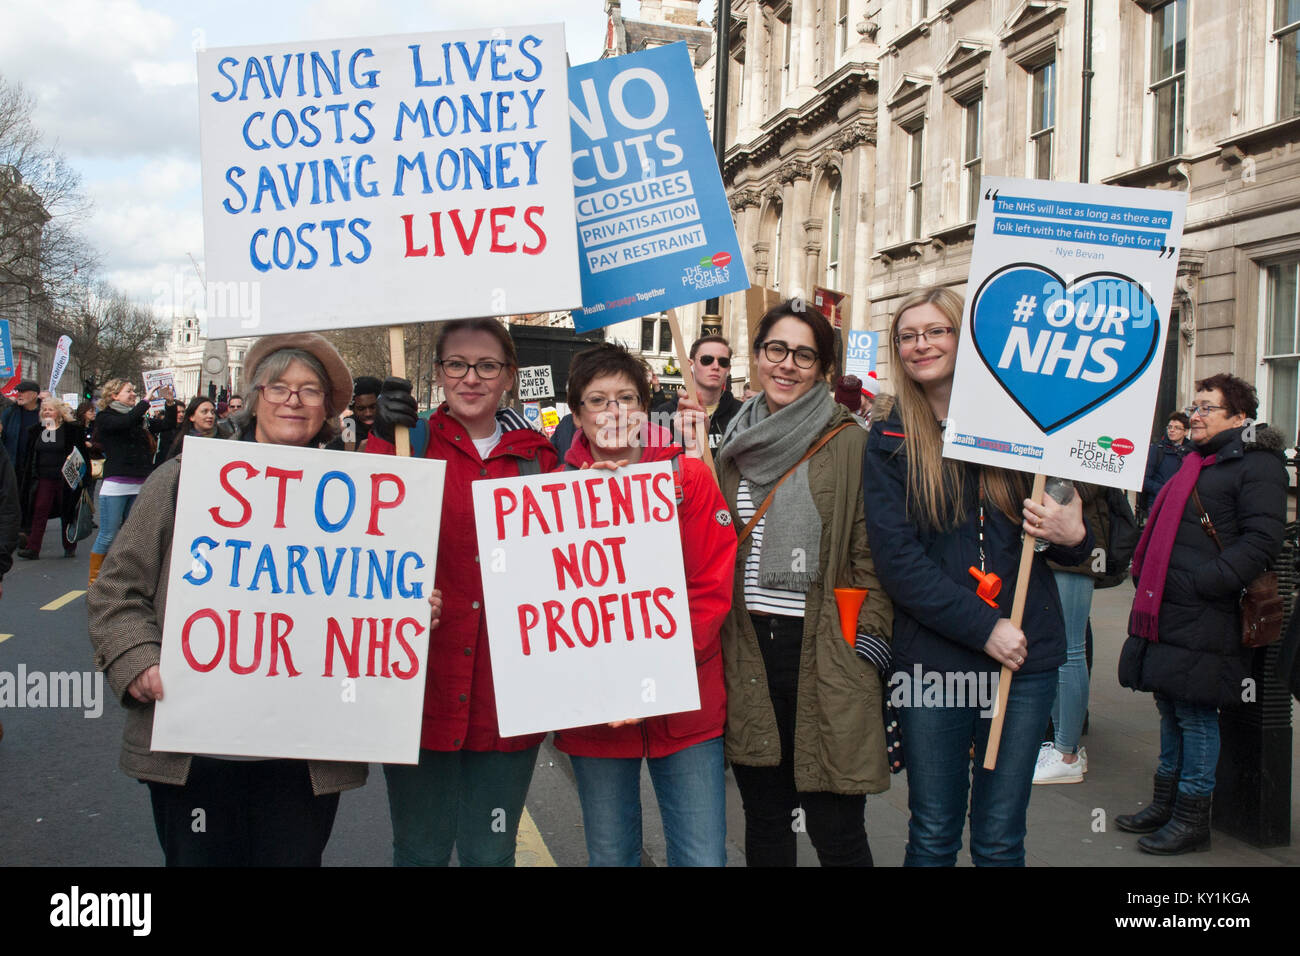 lively demonstration with five smiling women with placards ''Stop starving our NHS' 'Patients not - Stock Image